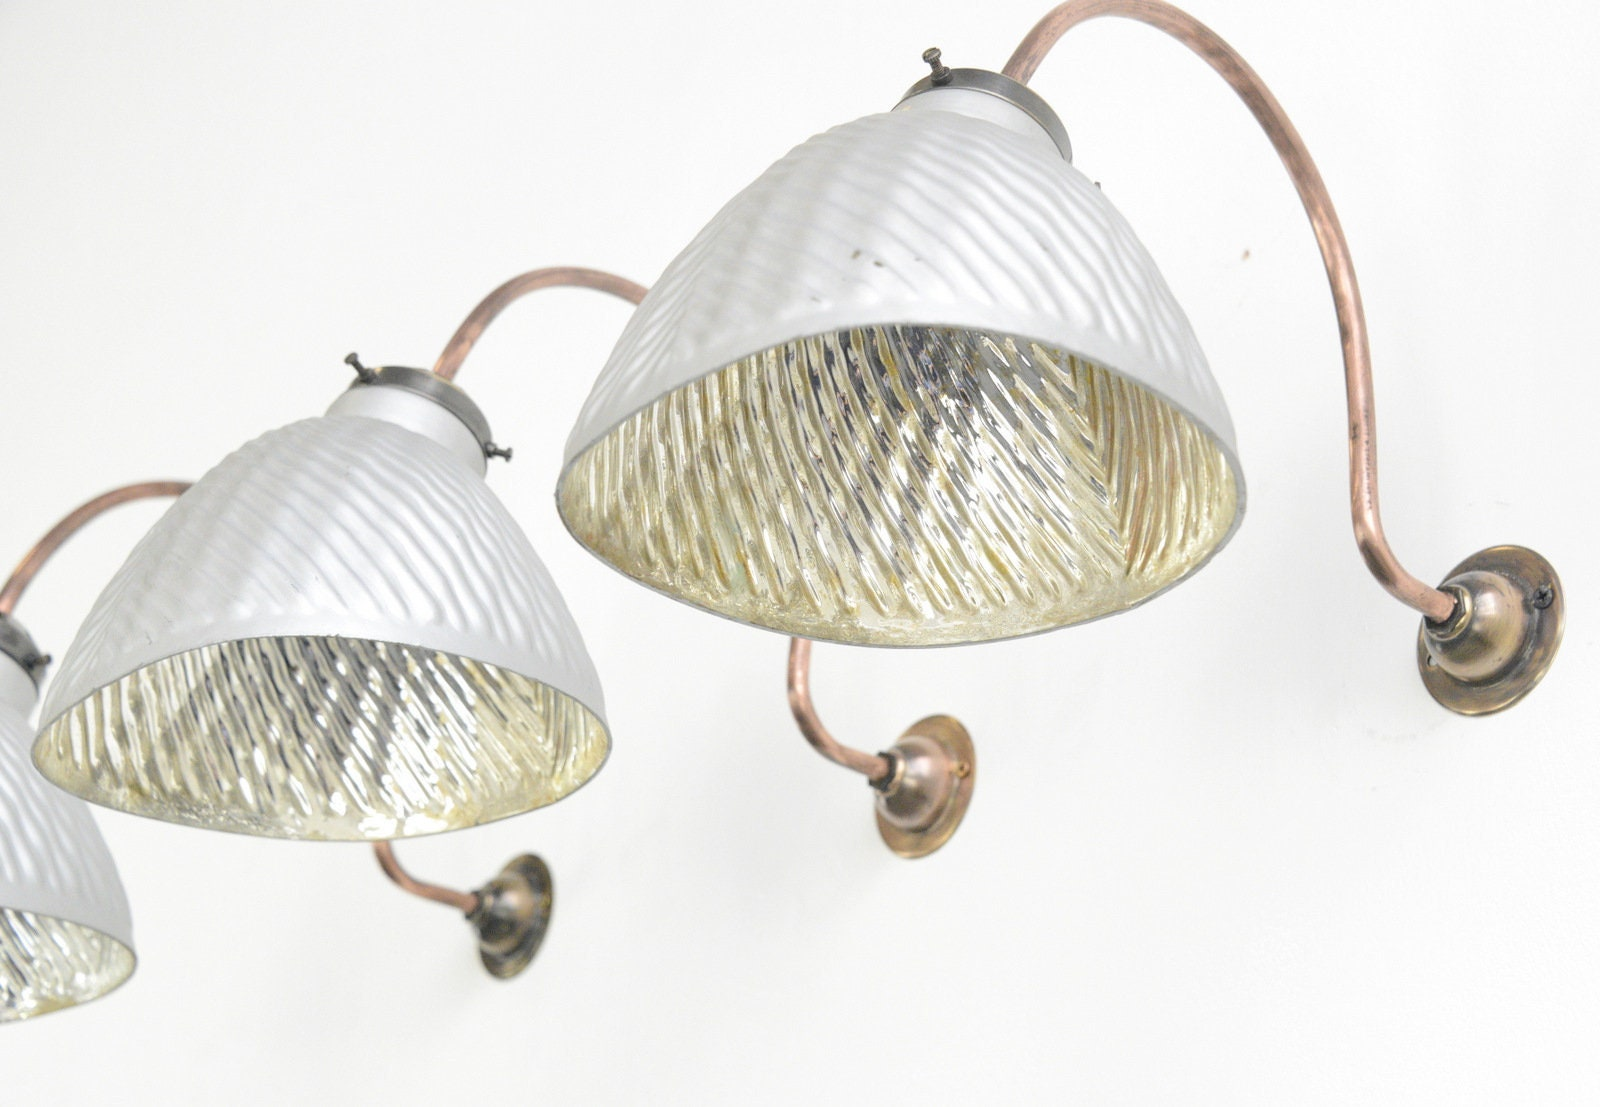 Wall Mounted Mercury Lights Circa 1930s